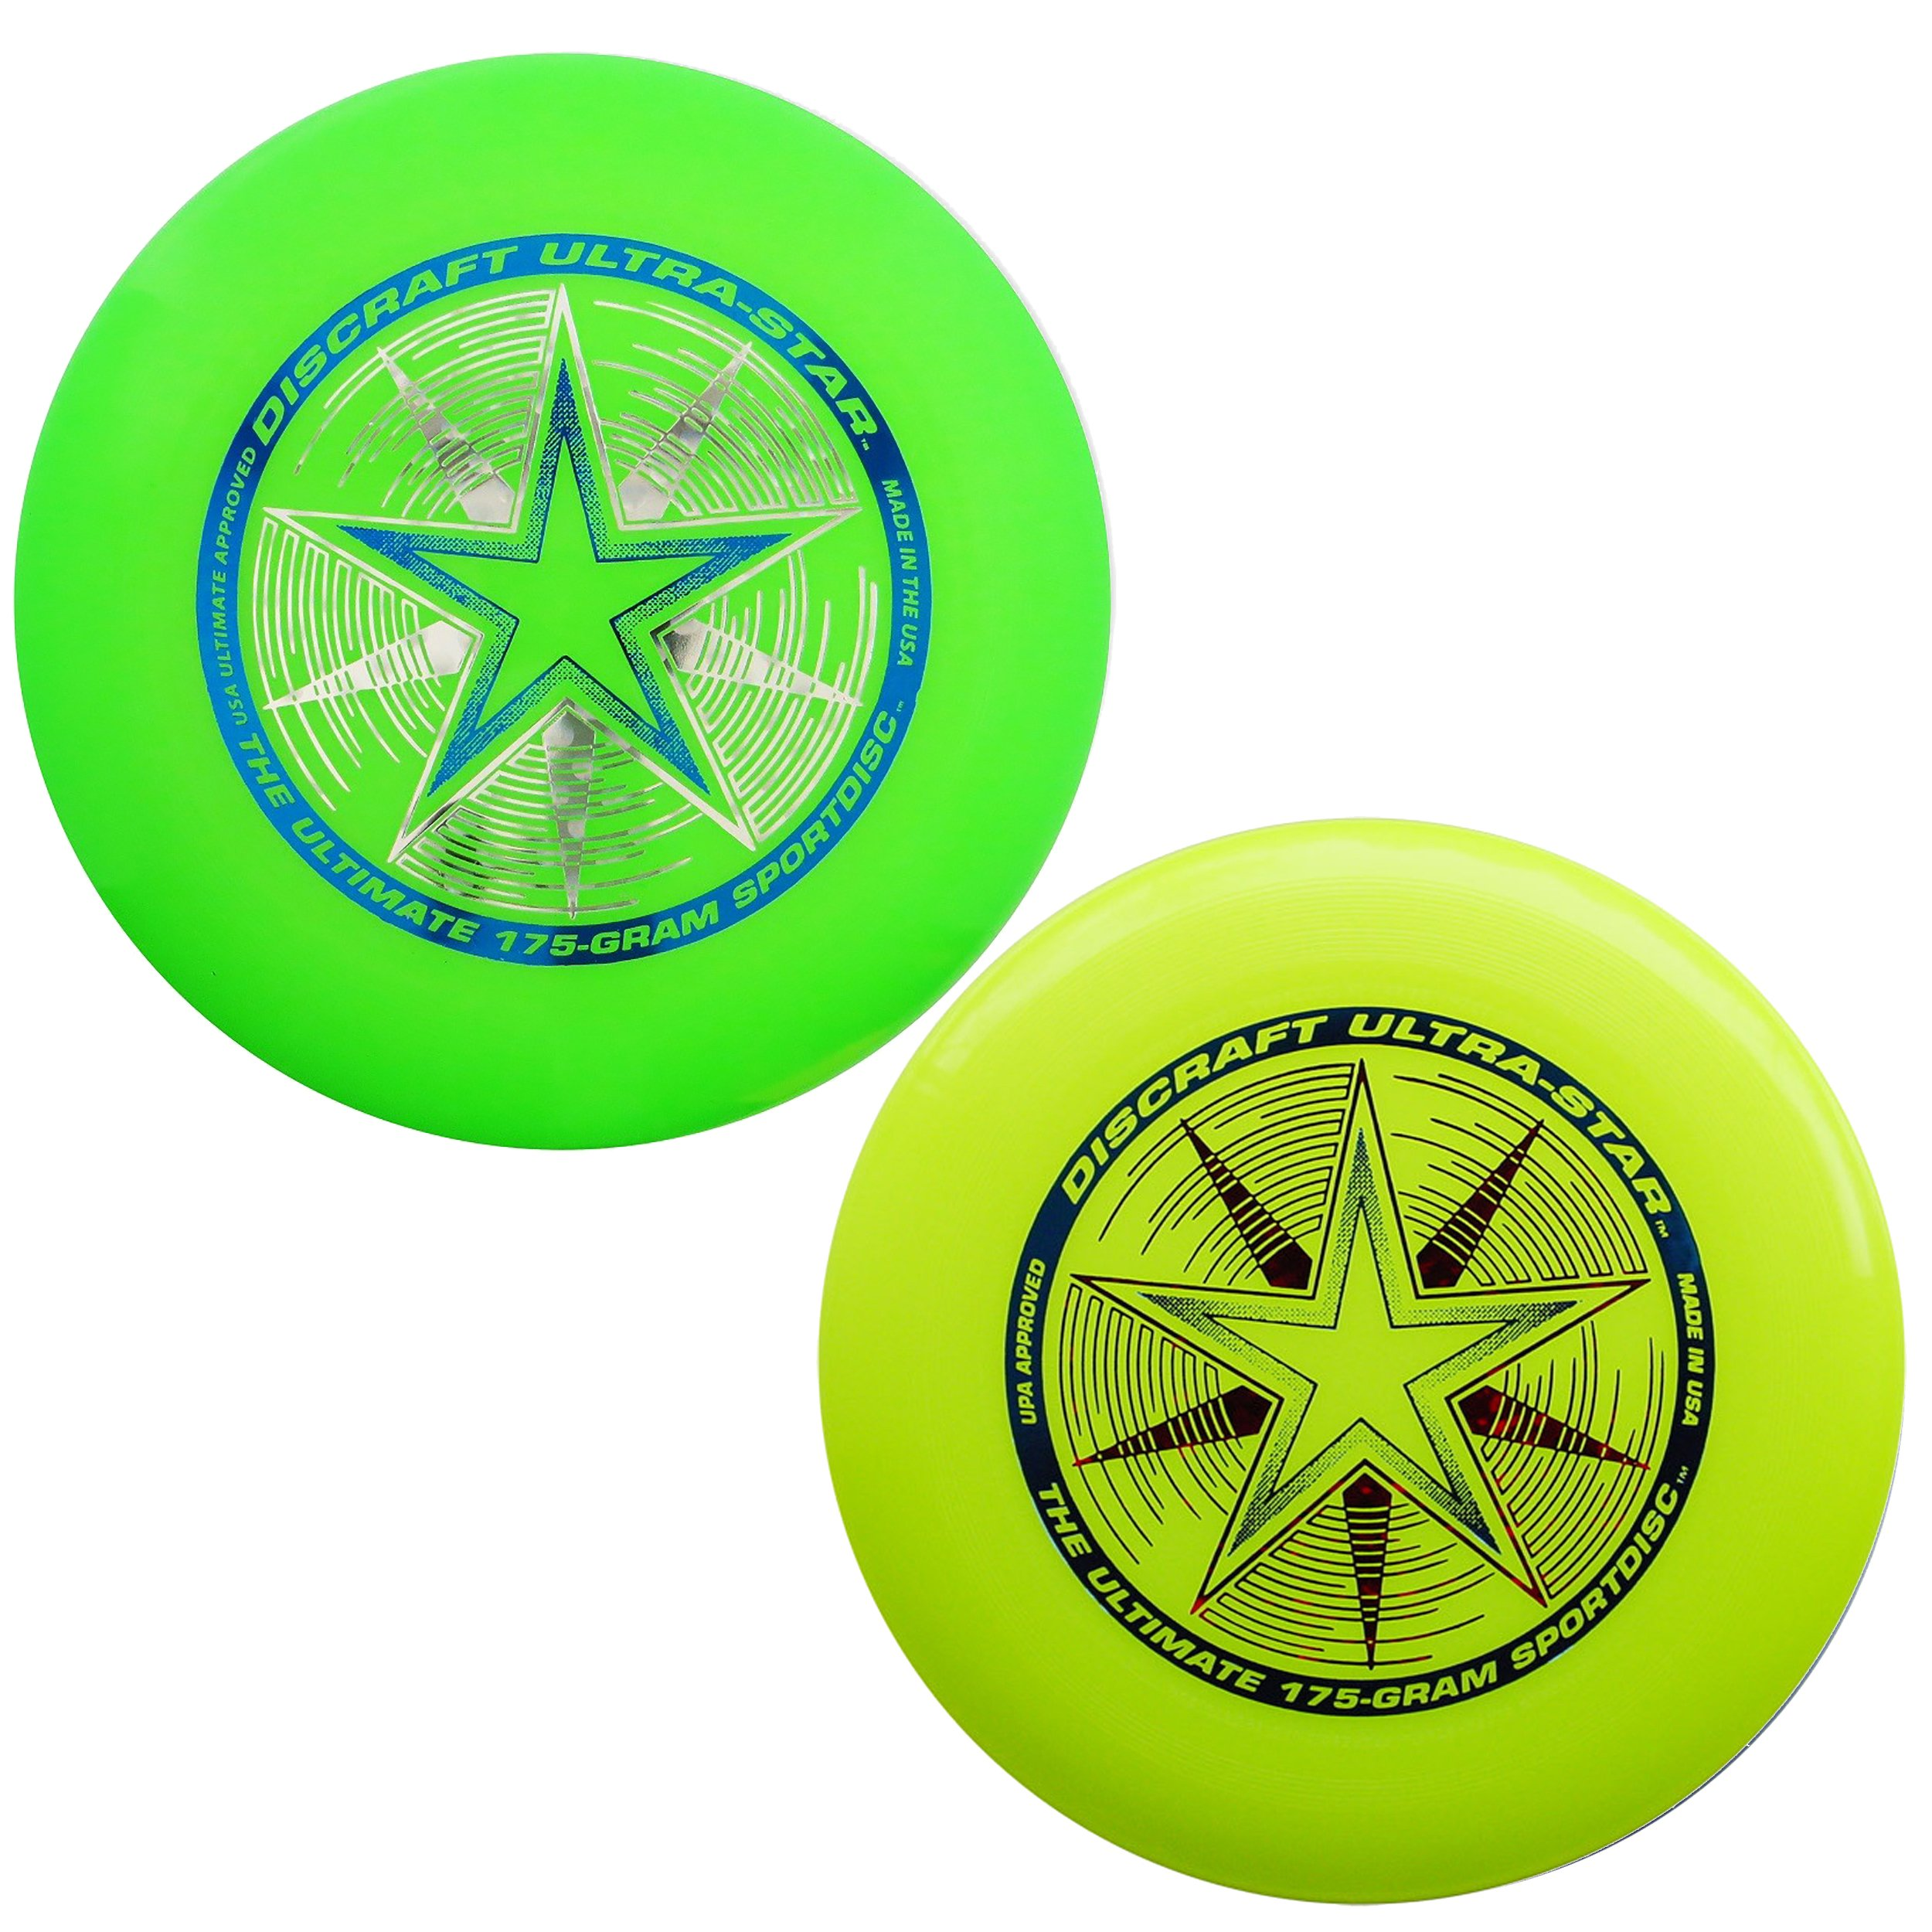 Discraft 175 gram Ultra Star Sport Disc - 2 Pack (Yellow & Green) by Discraft